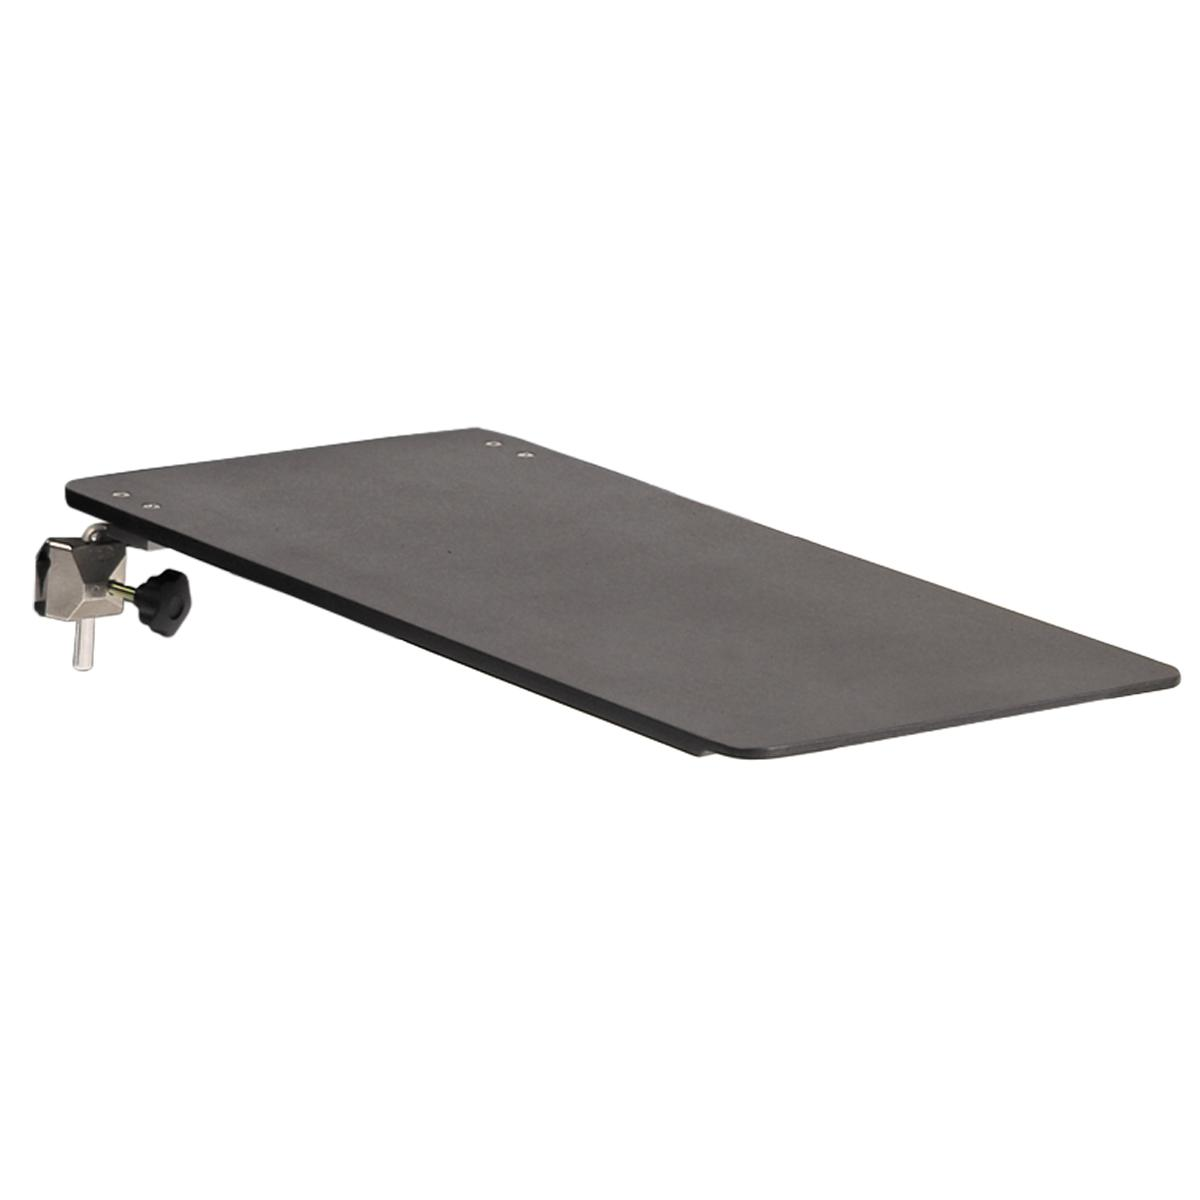 Carbon Lights™ Rectangular Table attached to OR table